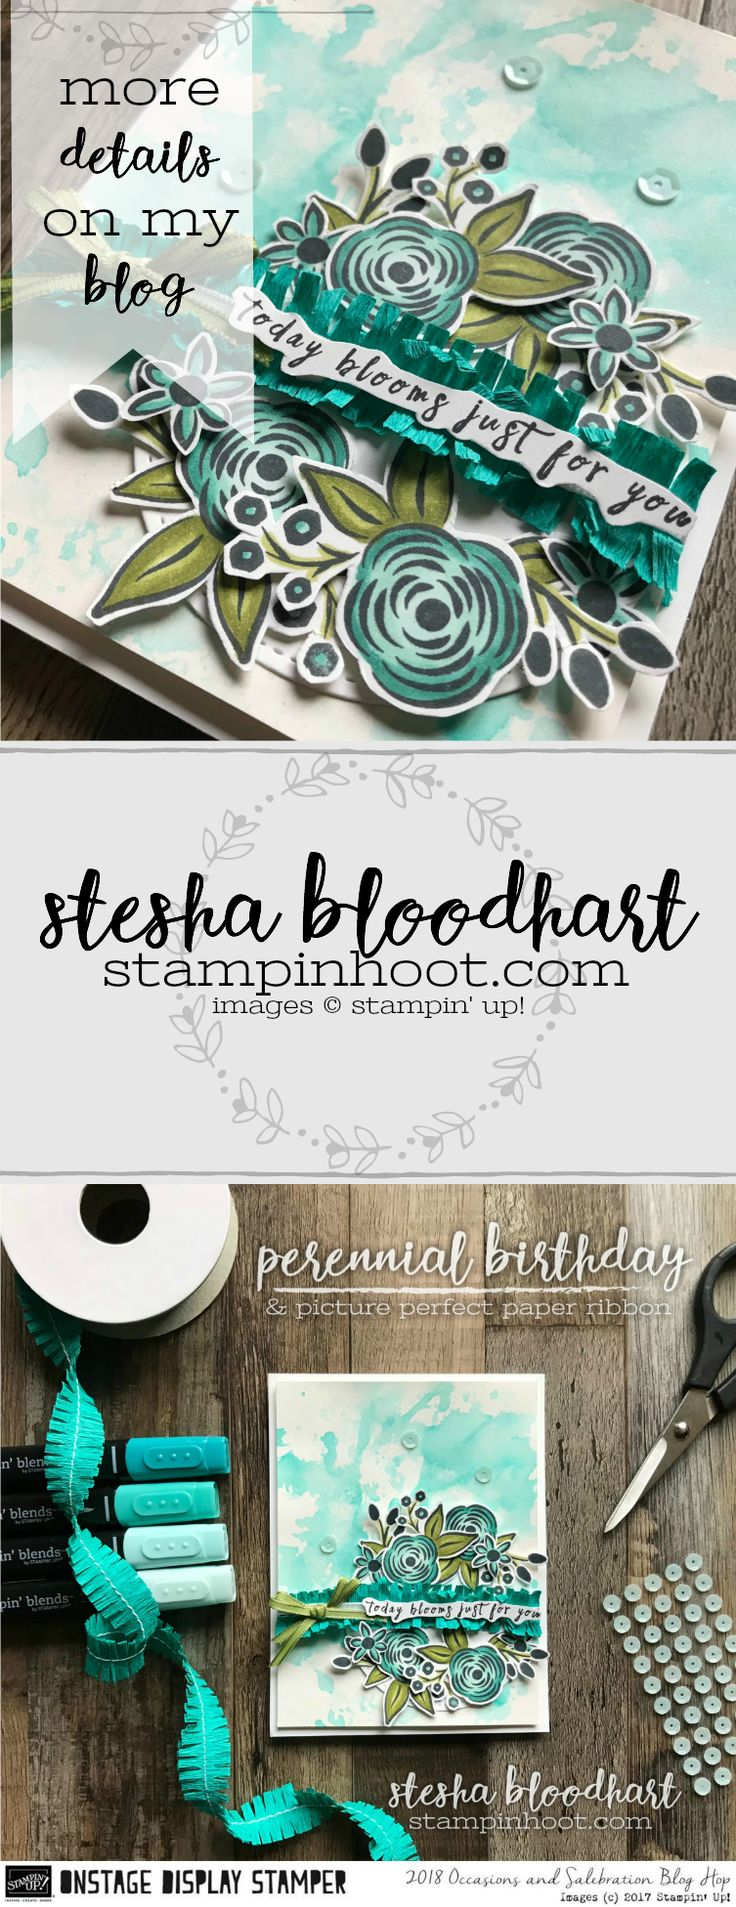 Perennial Birthday from the Stampin' Up! 2018 Occasions Catalog. Hop along with the rest of the Display Stampers for oodles of inspiration. #displaystamperbloghop #steshabloodhart #stampinhoot